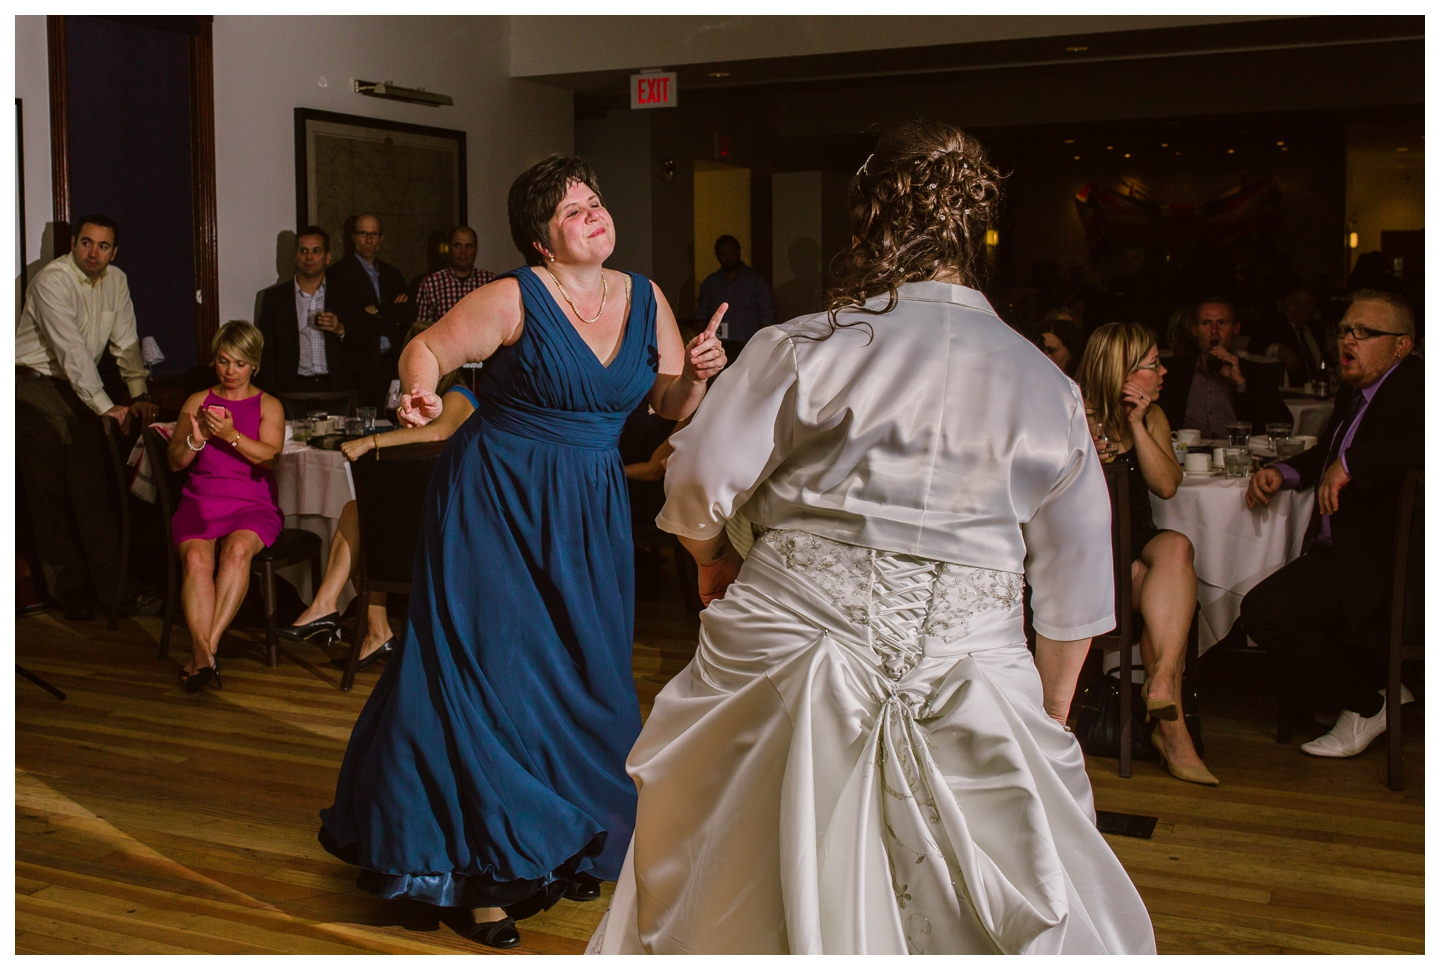 Guests dancing at Fort Calgary wedding reception